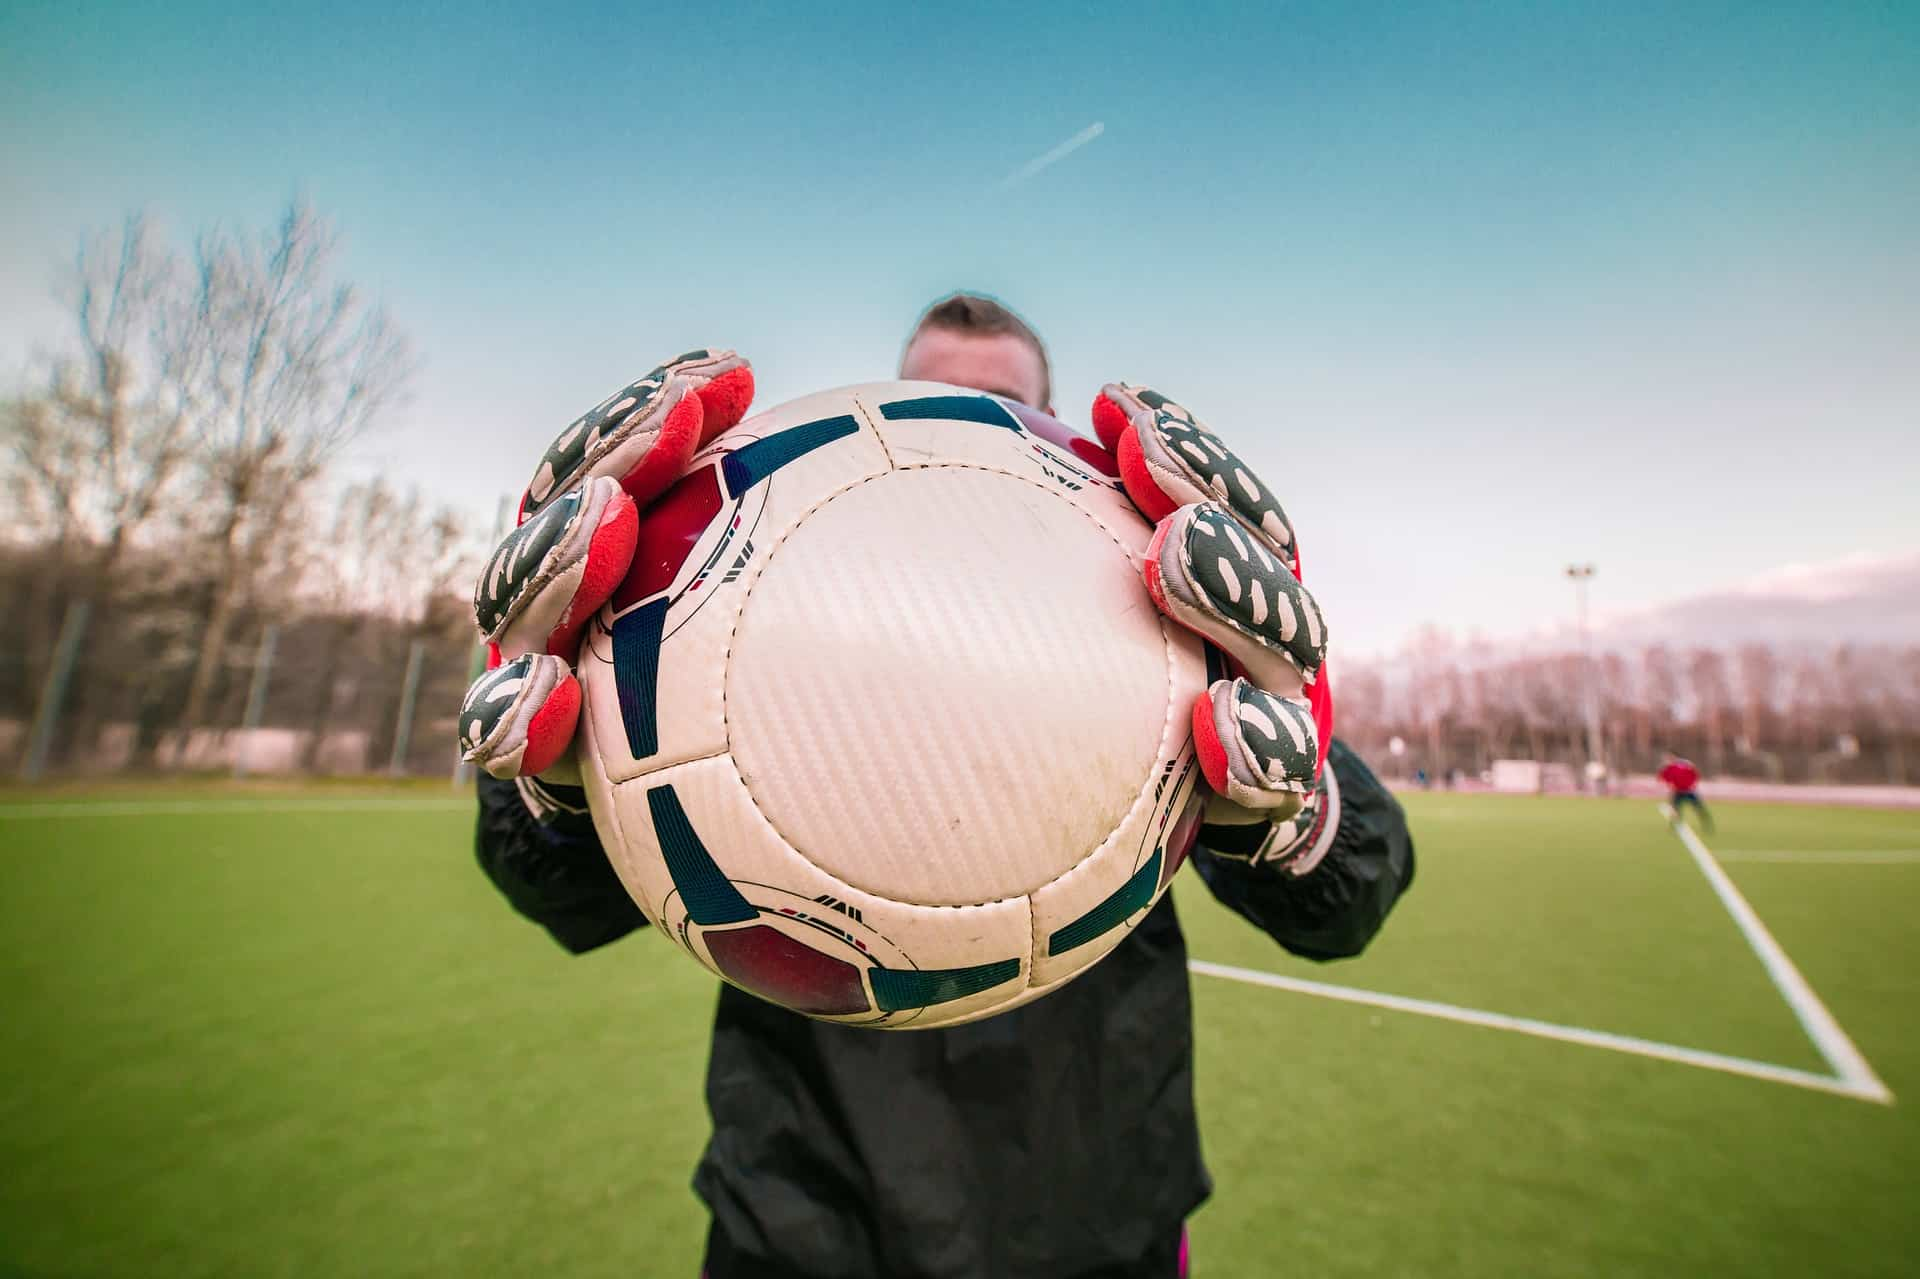 Top Techniques To Learn Football Game